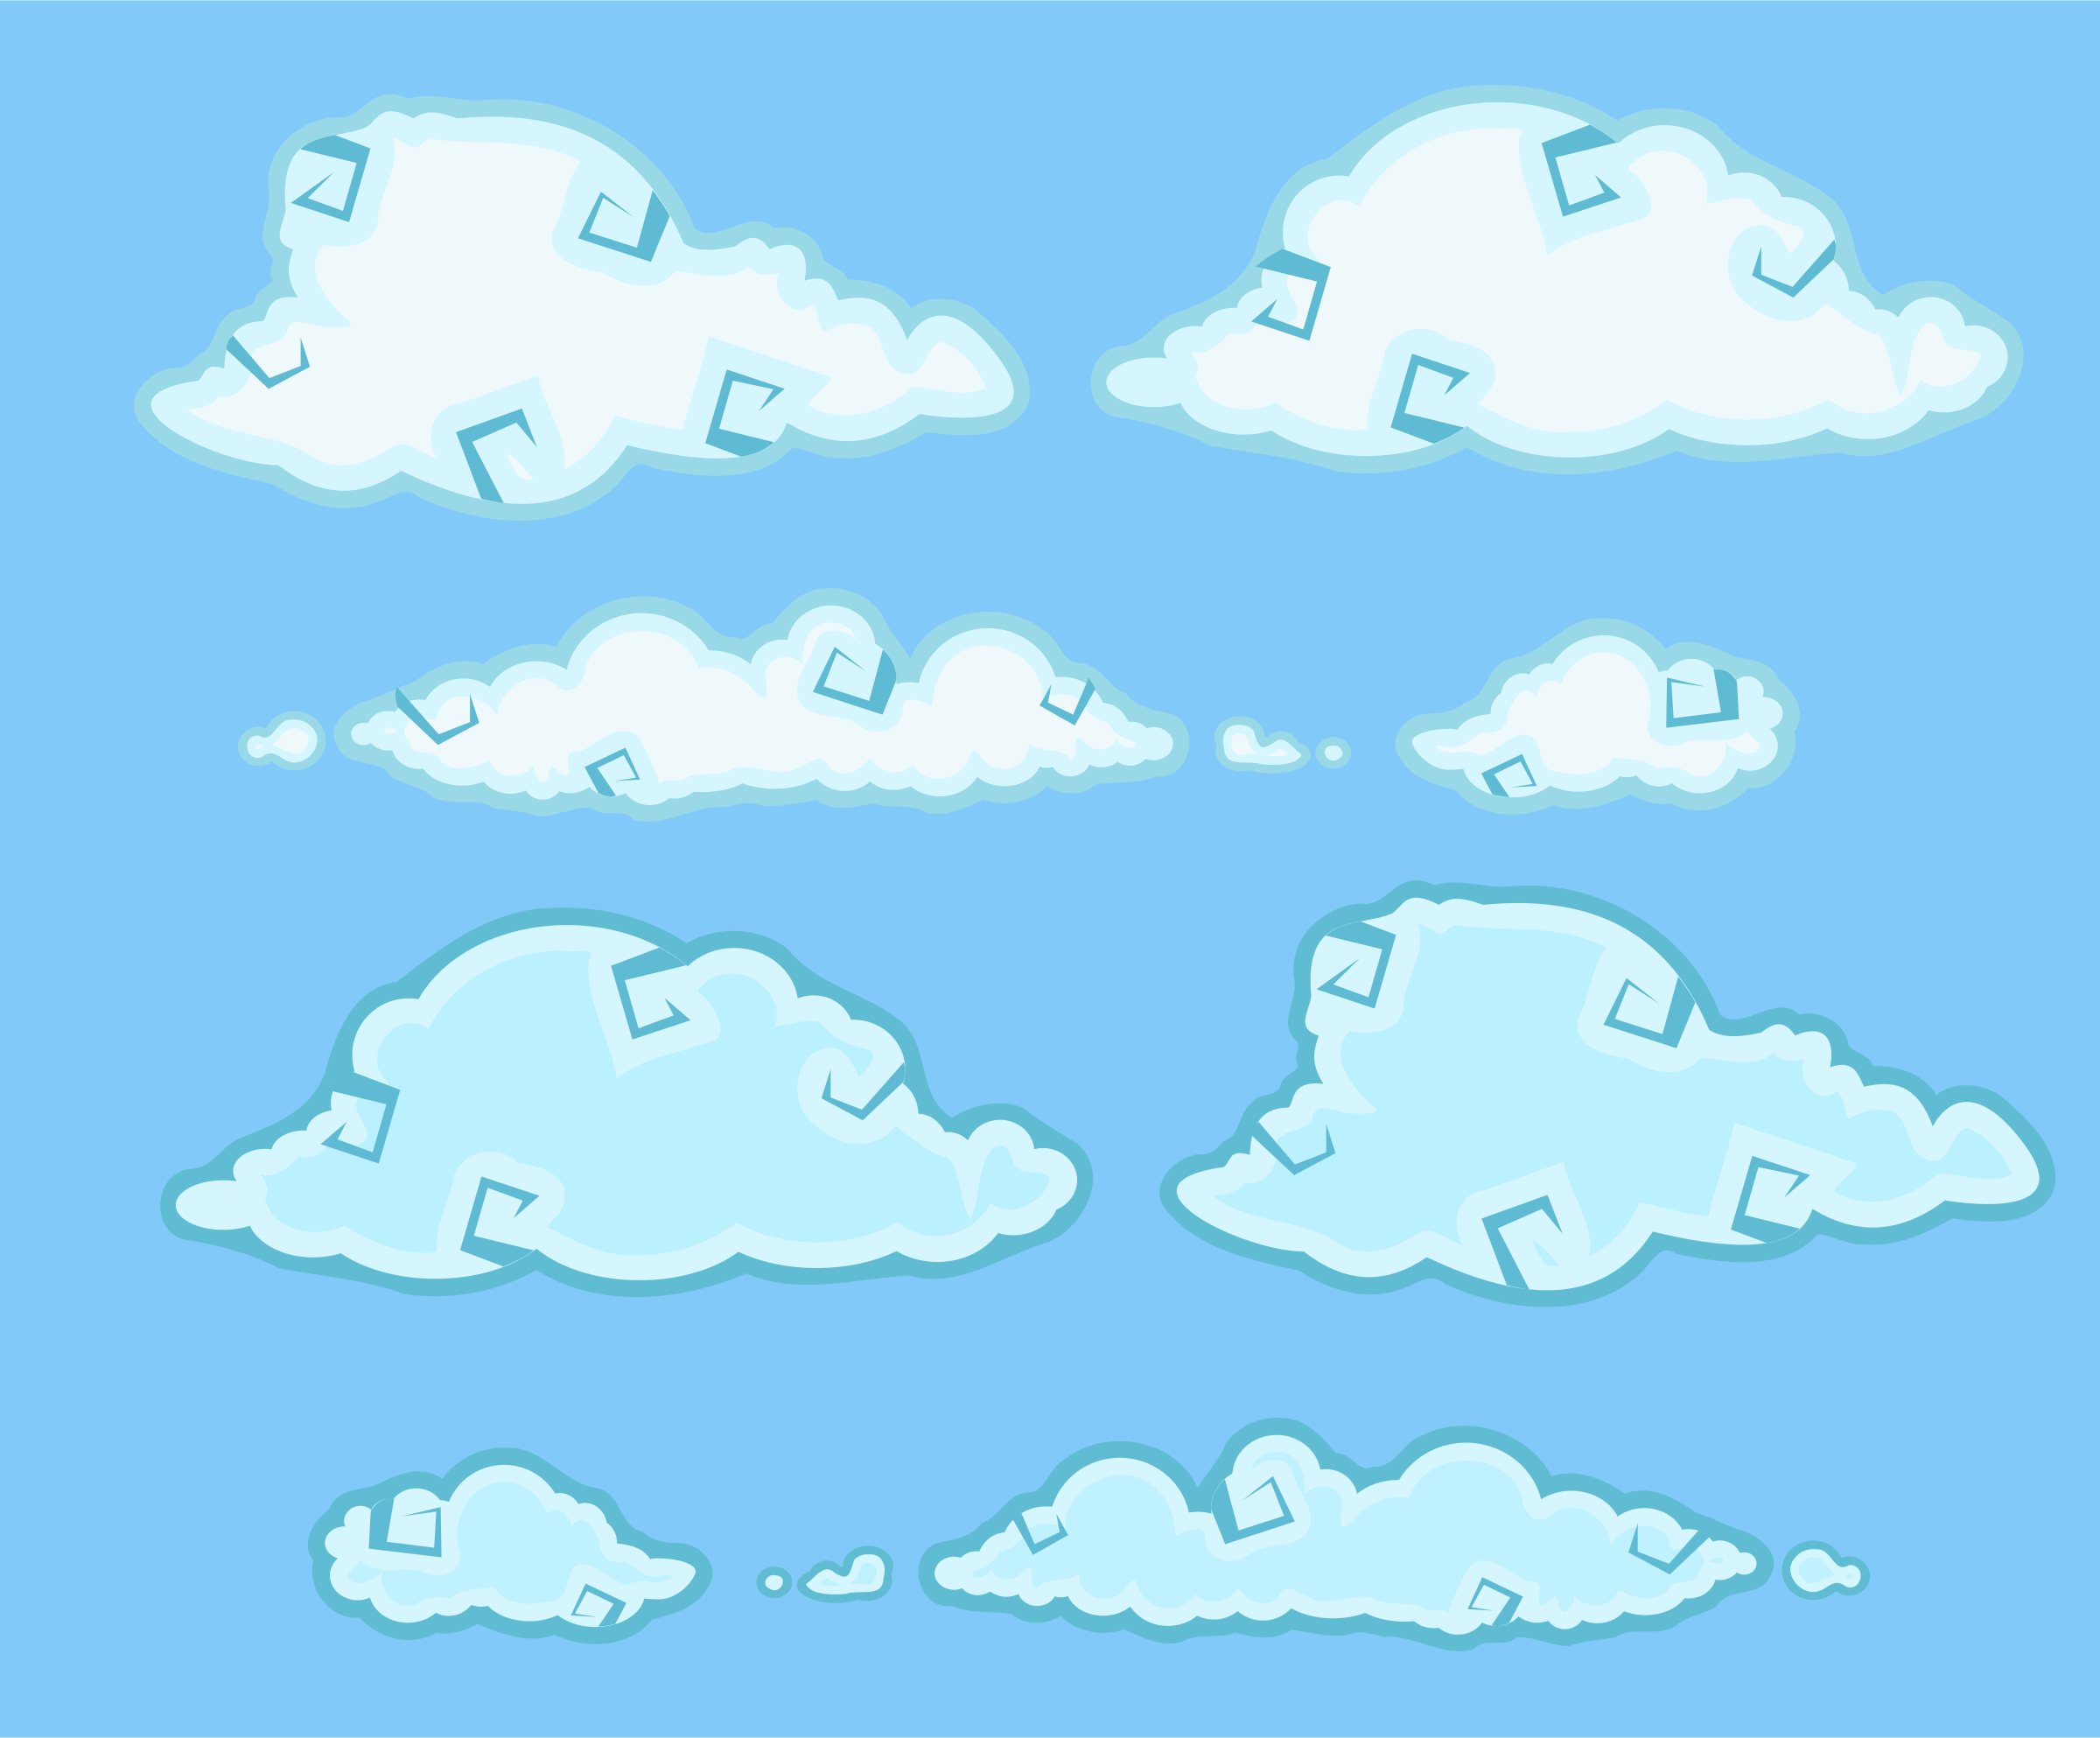 Clouds by talekids